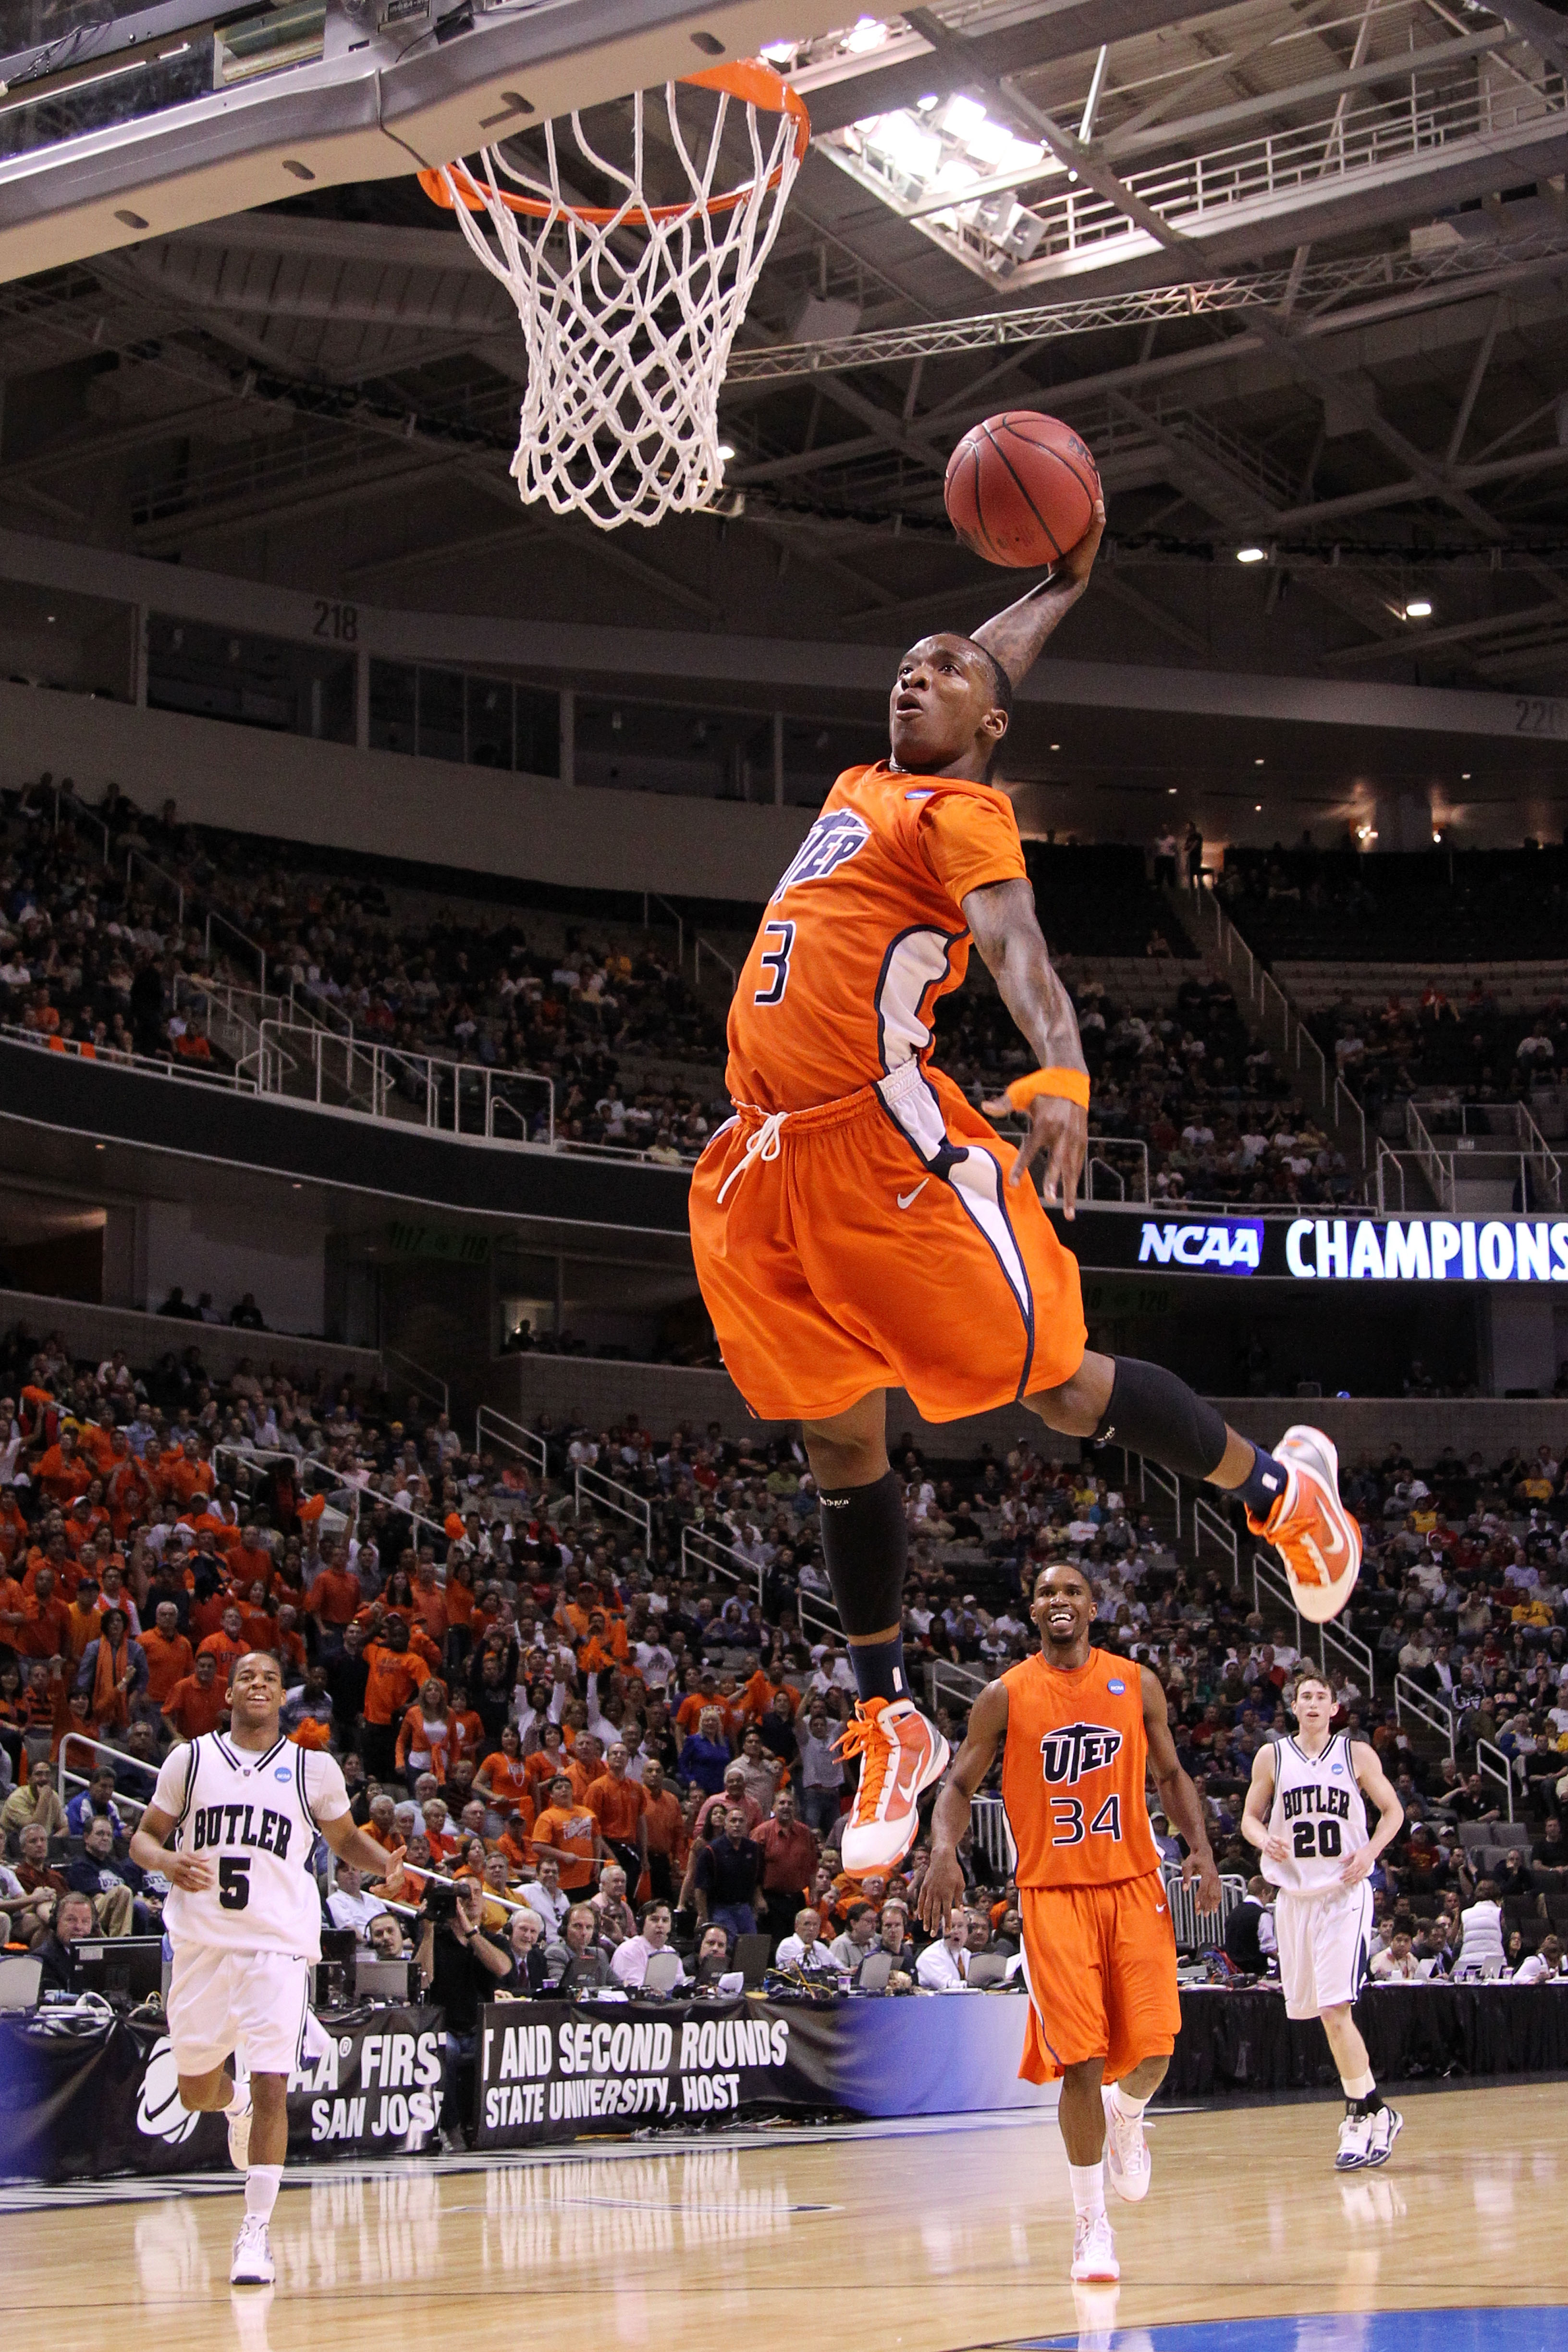 SAN JOSE, CA - MARCH 18:  Guard Randy Culpepper #3 of the UTEP Miners dunks the ball against the Butler Bulldogs during the first round of the 2010 NCAA men's basketball tournament at HP Pavilion on March 18, 2010 in San Jose, California.  (Photo by Jed J